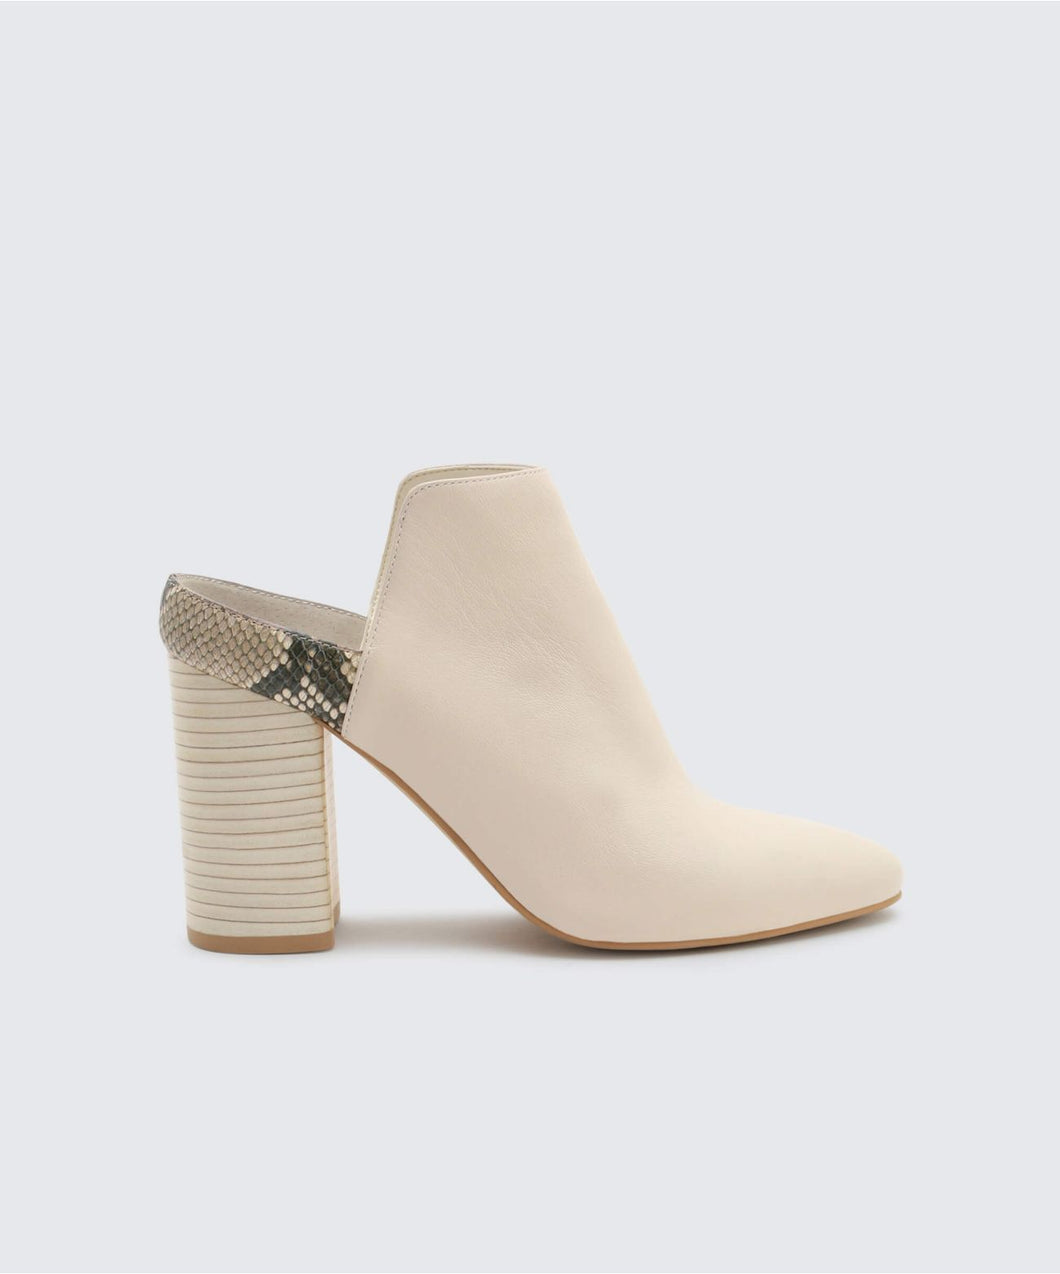 RENLY BOOTIES IN IVORY -   Dolce Vita